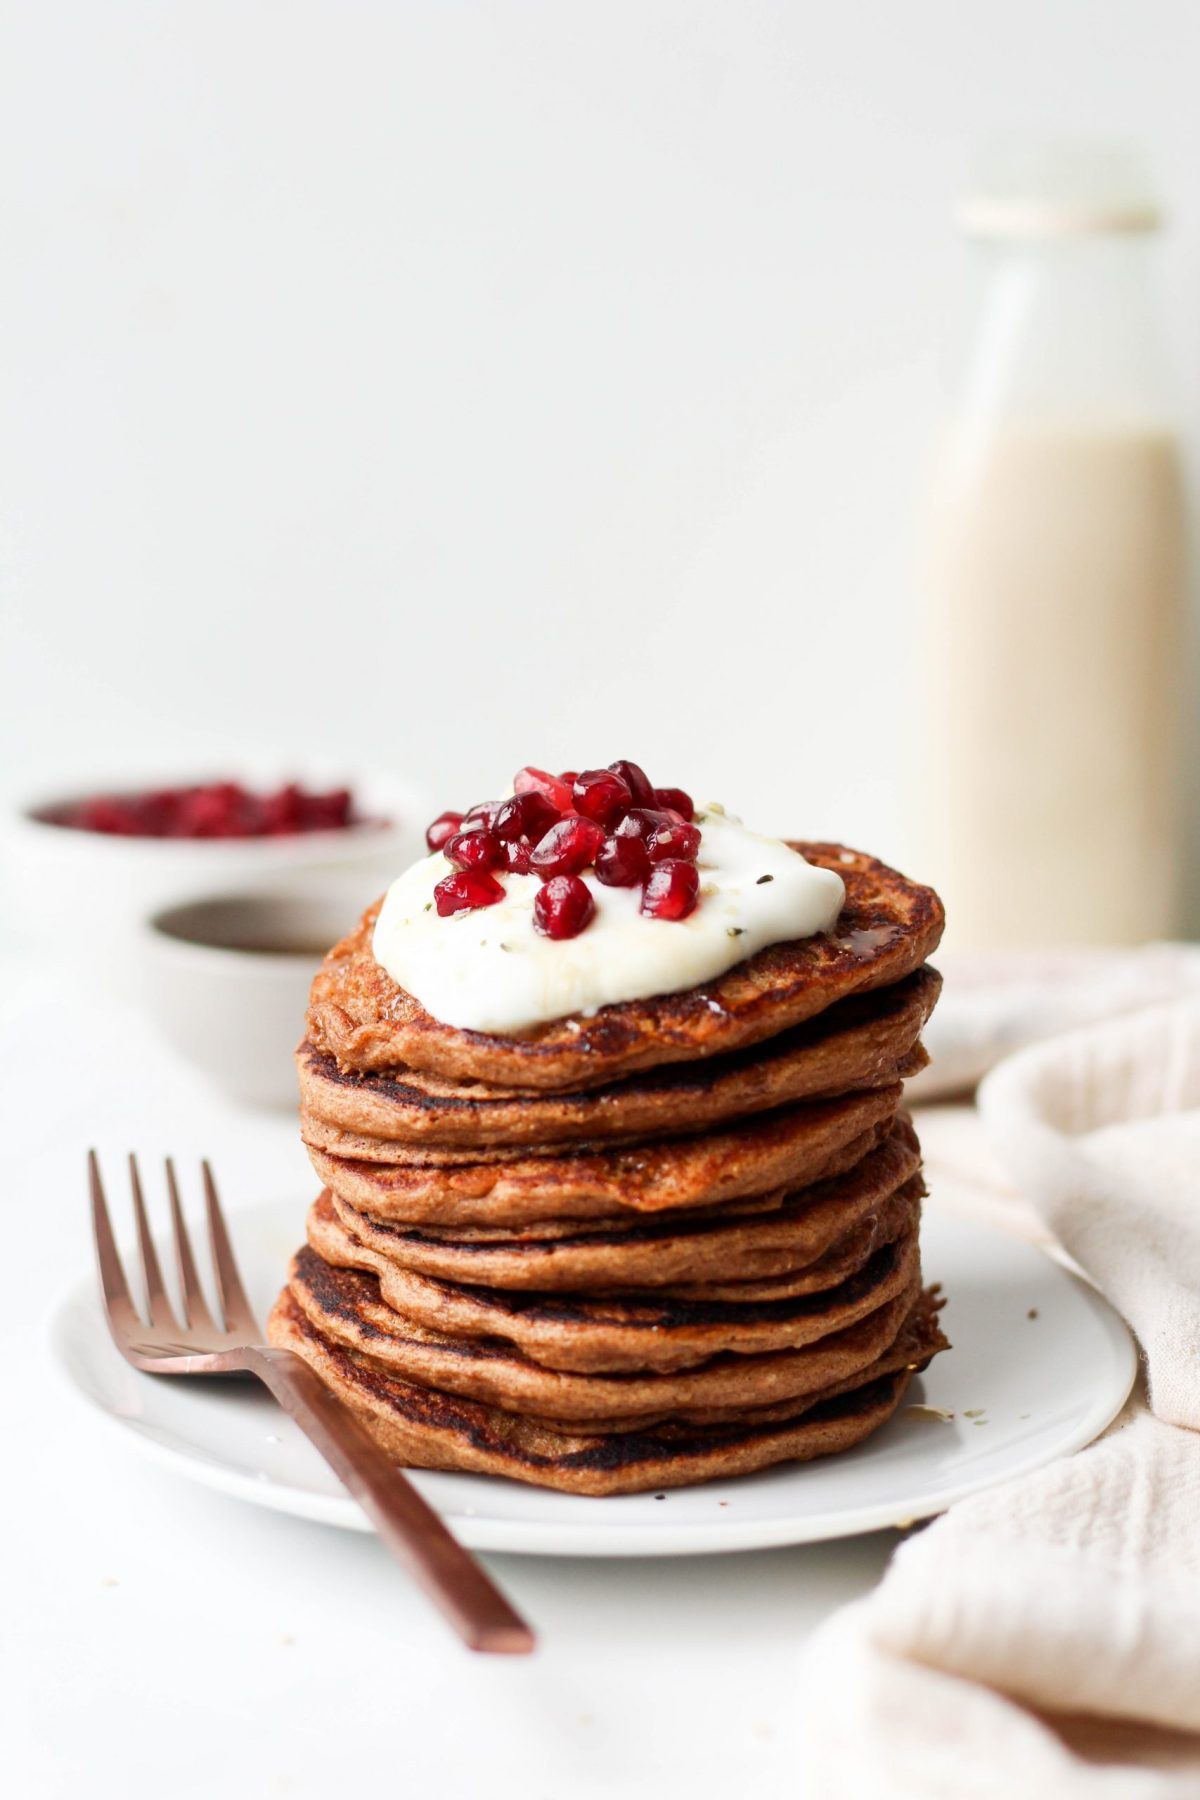 These healthy Buttermilk Gingerbread Pancakes are the ultimate holiday breakfast! Make them on Christmas morning or whenever you want to feel festive. They're fluffy, vegan and made with whole wheat flour!